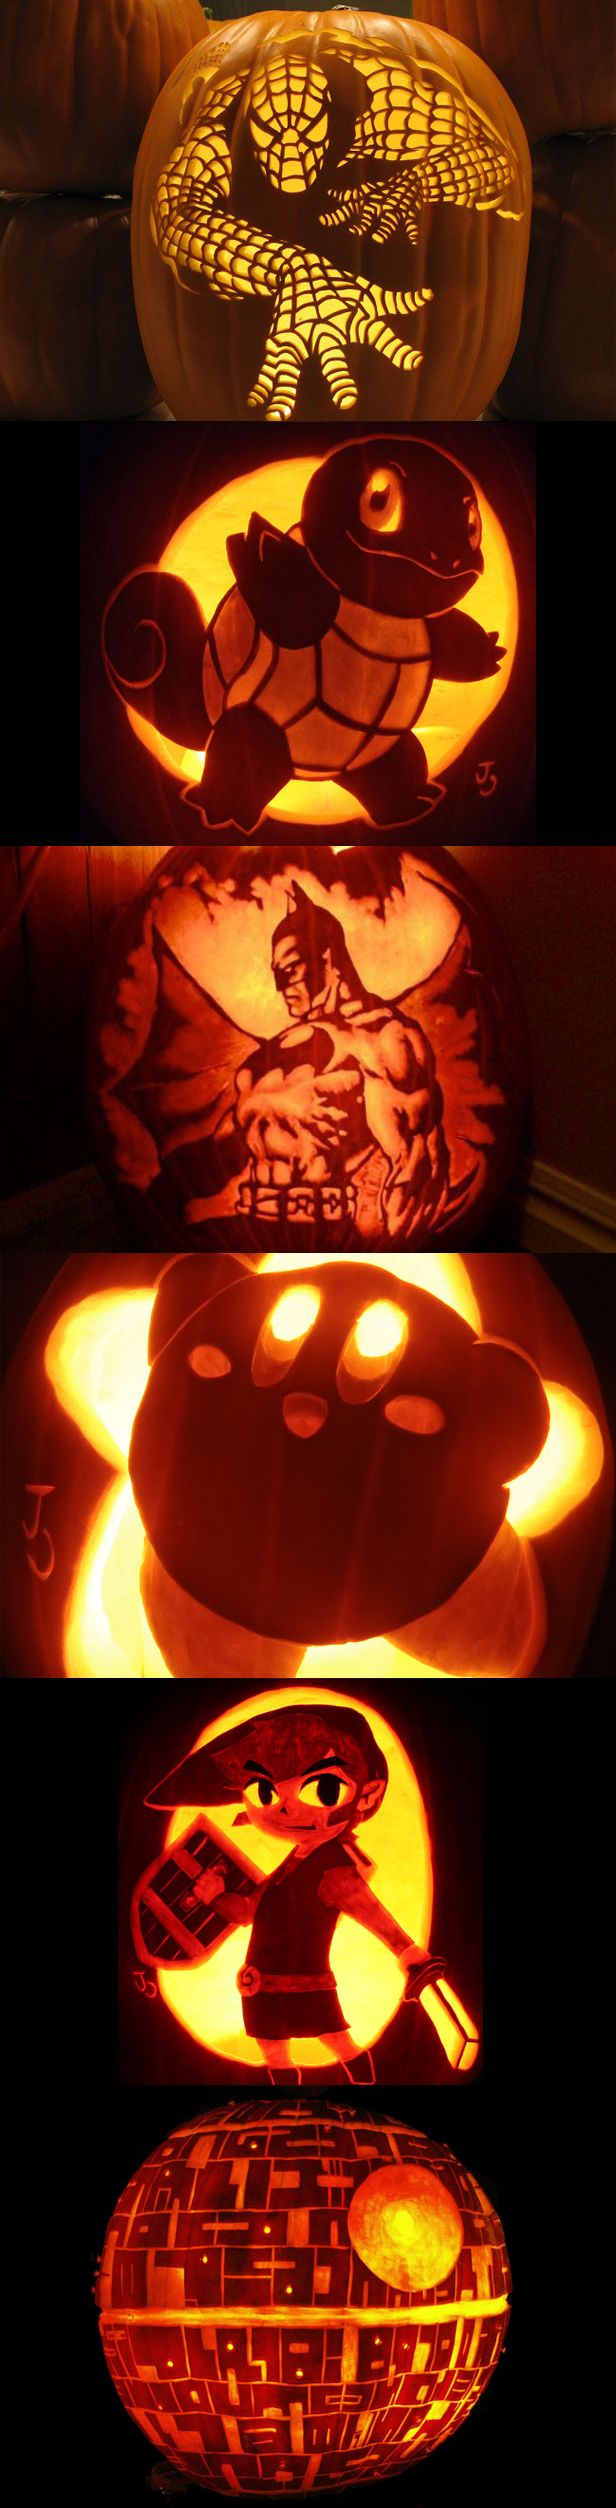 Geek Up Your Halloween With These Nerdy Jack O Lantern Ideas